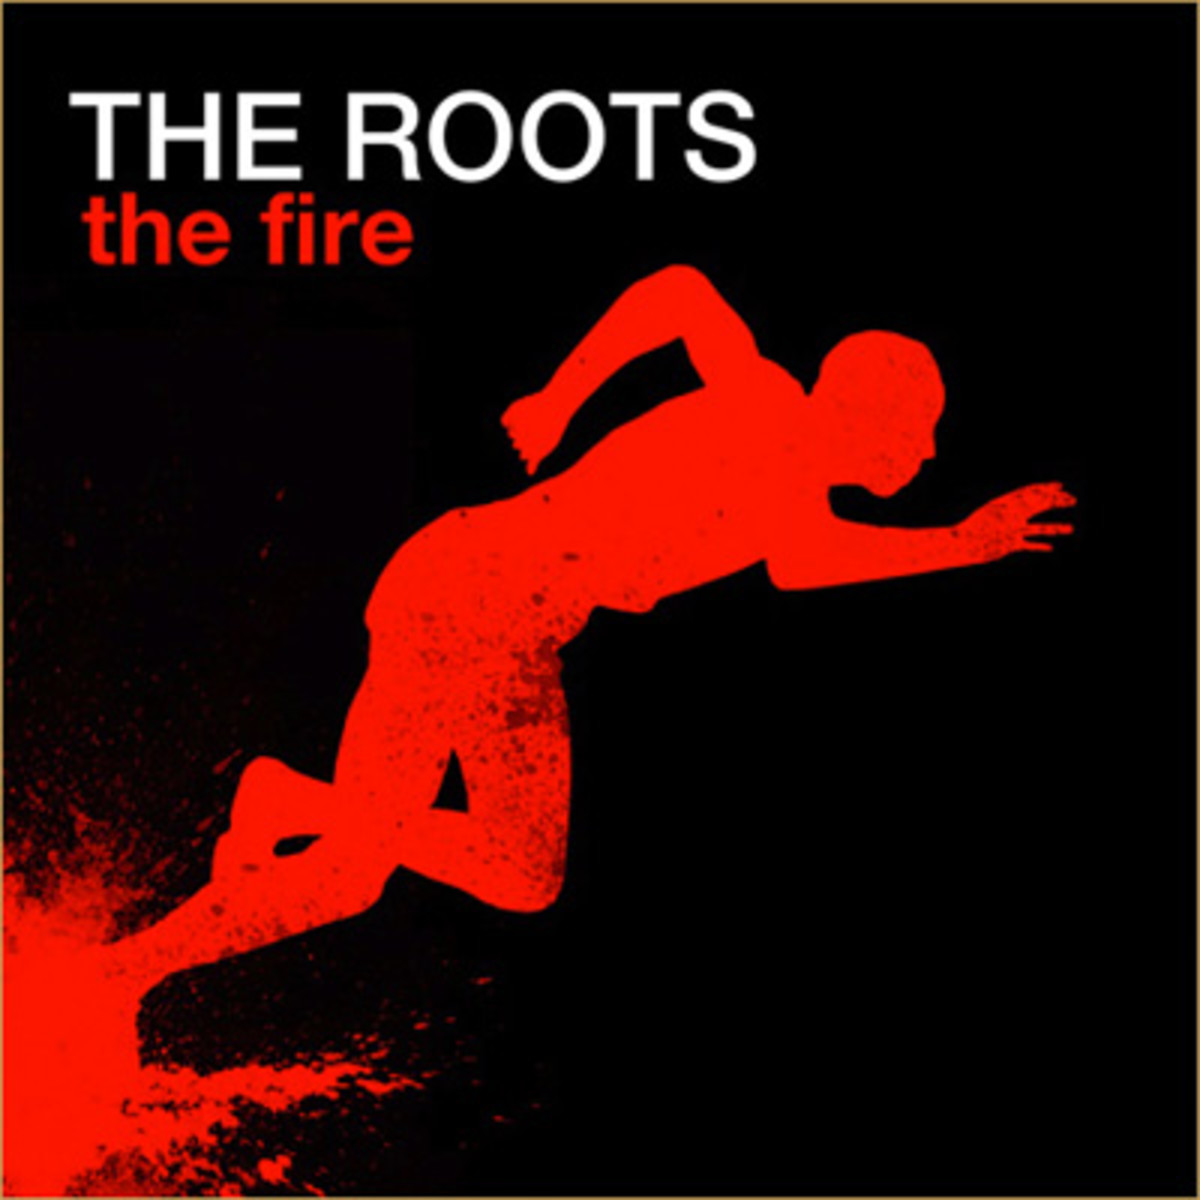 theroots-thefire.jpg